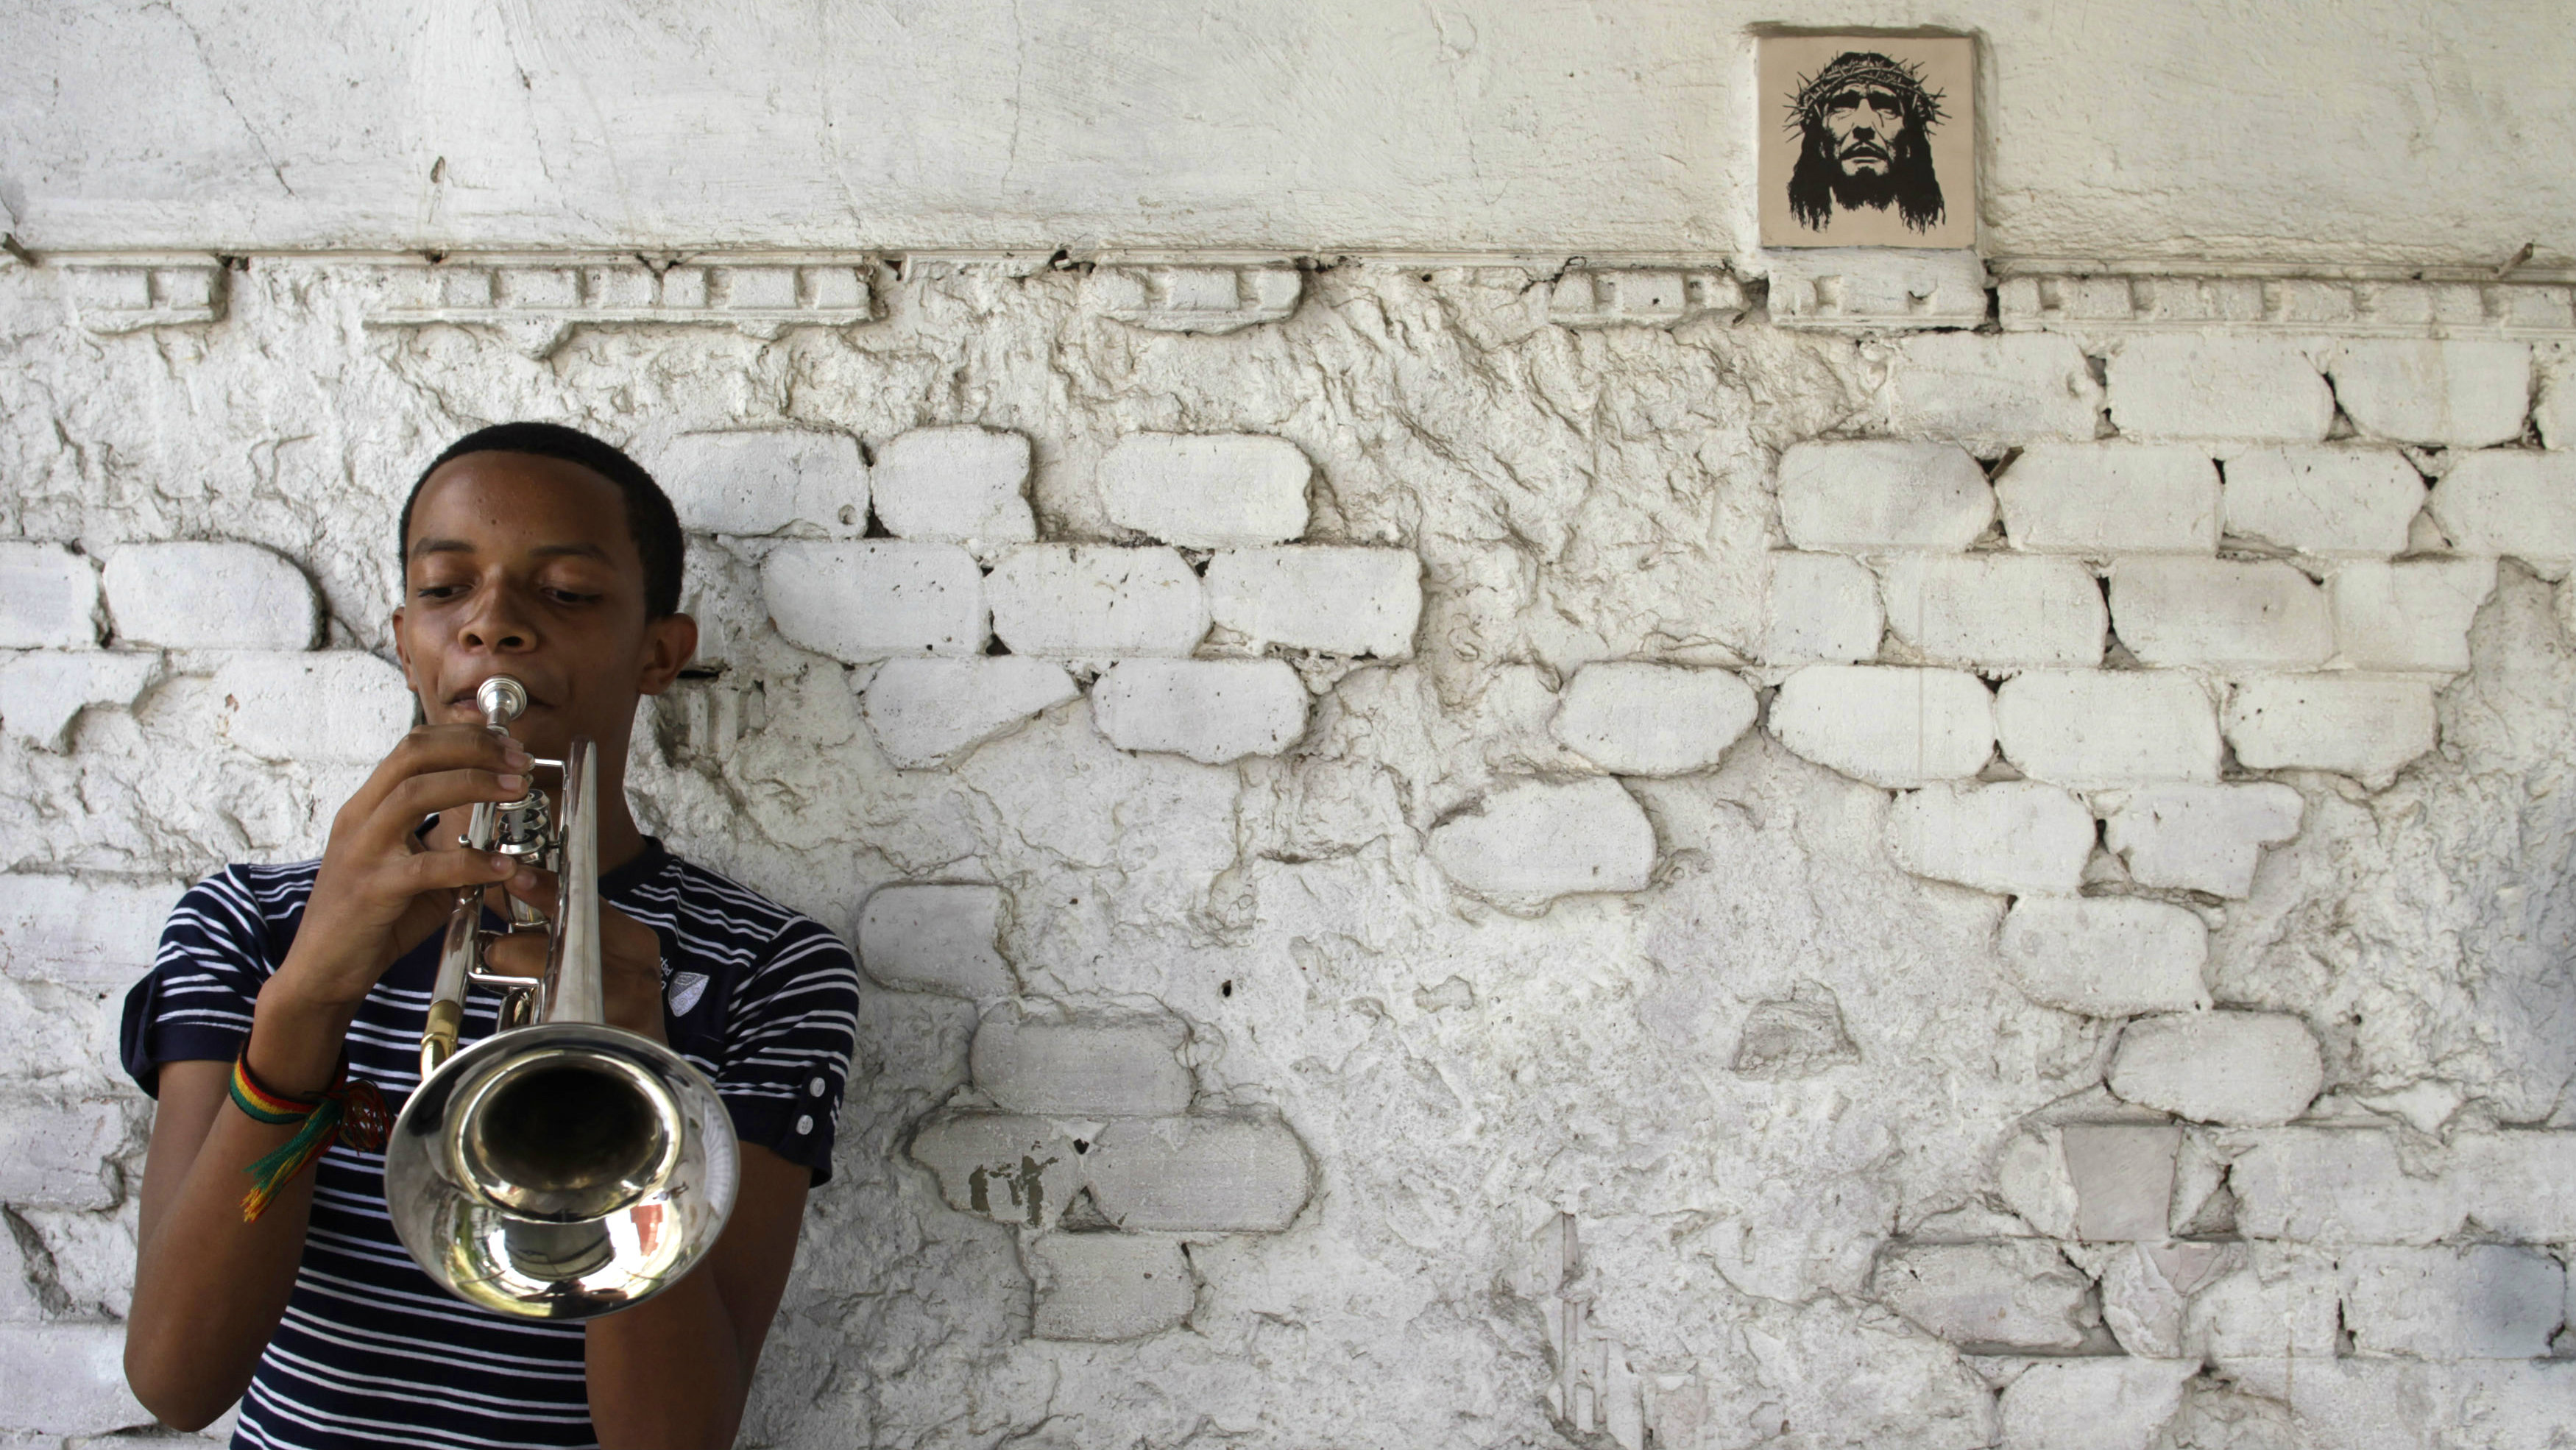 Pablo Mures, 14, a member of the Junior Jazz band from the Danilo Perez Foundation, practises his trumpet on a street in a low-income neighbourhood in Santa Ana in Panama City April 26, 2013. The foundation, an outreach music project, teaches music to children and adolescents living in poverty and high risk neighbourhoods such as El Chorrillo, San Miguelito and Santana. It aims to provide opportunities for youths who have been abandoned by their families, affected by, or are at risk of being involved in drugs, gangs and violence. The Junior Jazz band, formed over three years ago, is made up of six musicians from 12 to 14 years old. The band has performed at the Panama Jazz festival and was the opening band for international jazz musicians such as Ruben Blades and Herbie Hancock. Picture taken on April 26, 2013. REUTERS/Carlos Jasso